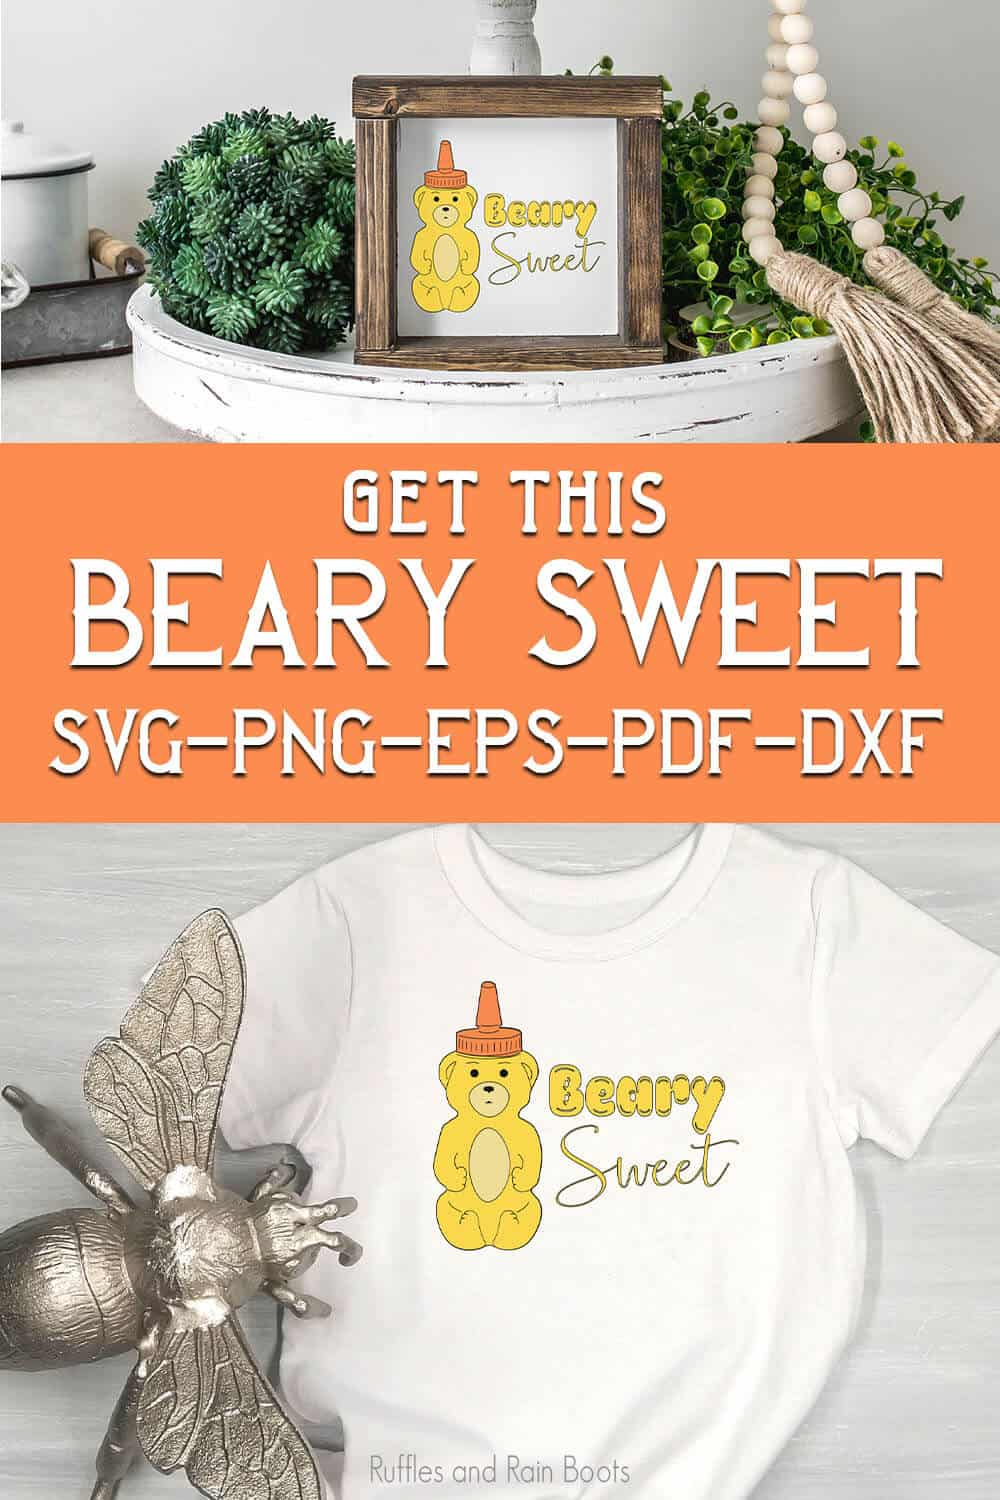 photo collage of using the easy honey bear cut file for cricut or silhouette with text which reads get this beary sweet svg png eps pdf dxf